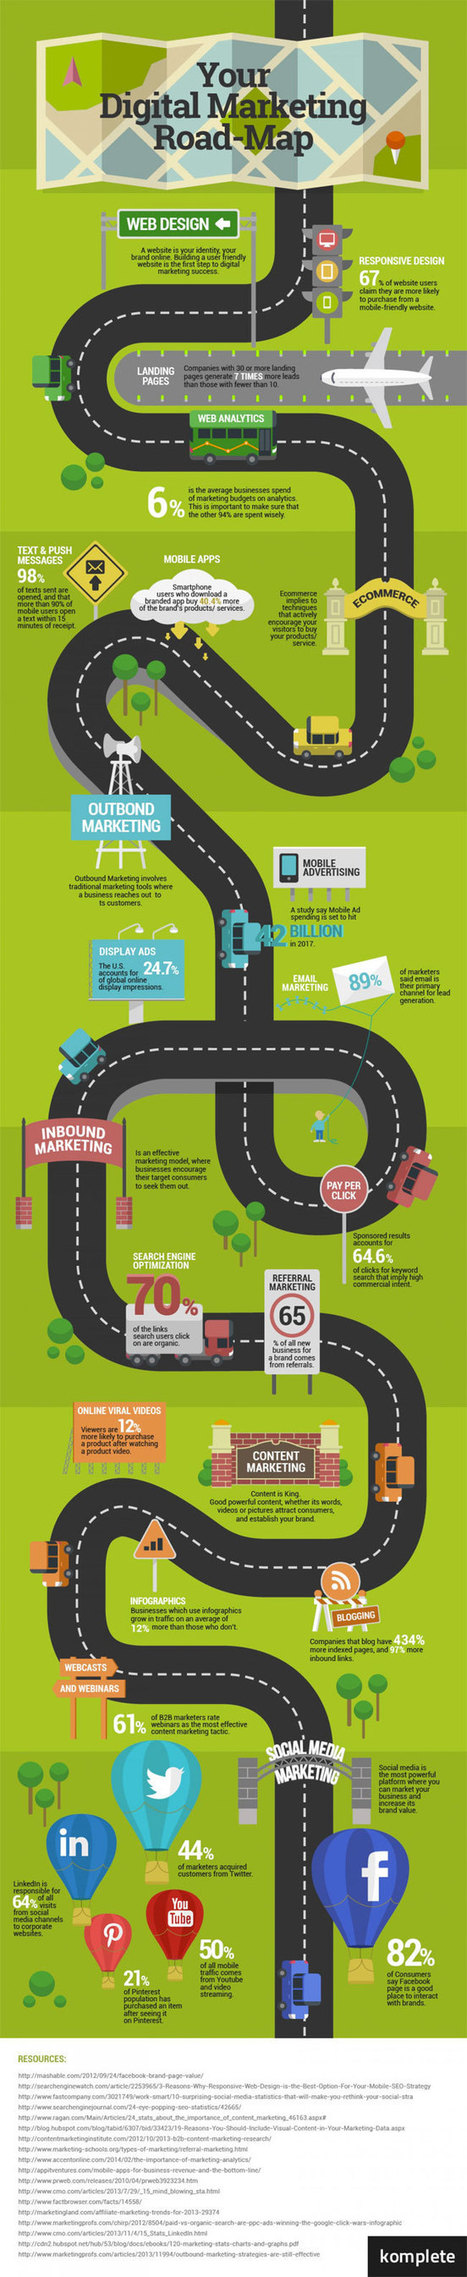 Do You Have a Digital Marketing Roadmap Like This? [Infographic] | Random stuff | Scoop.it